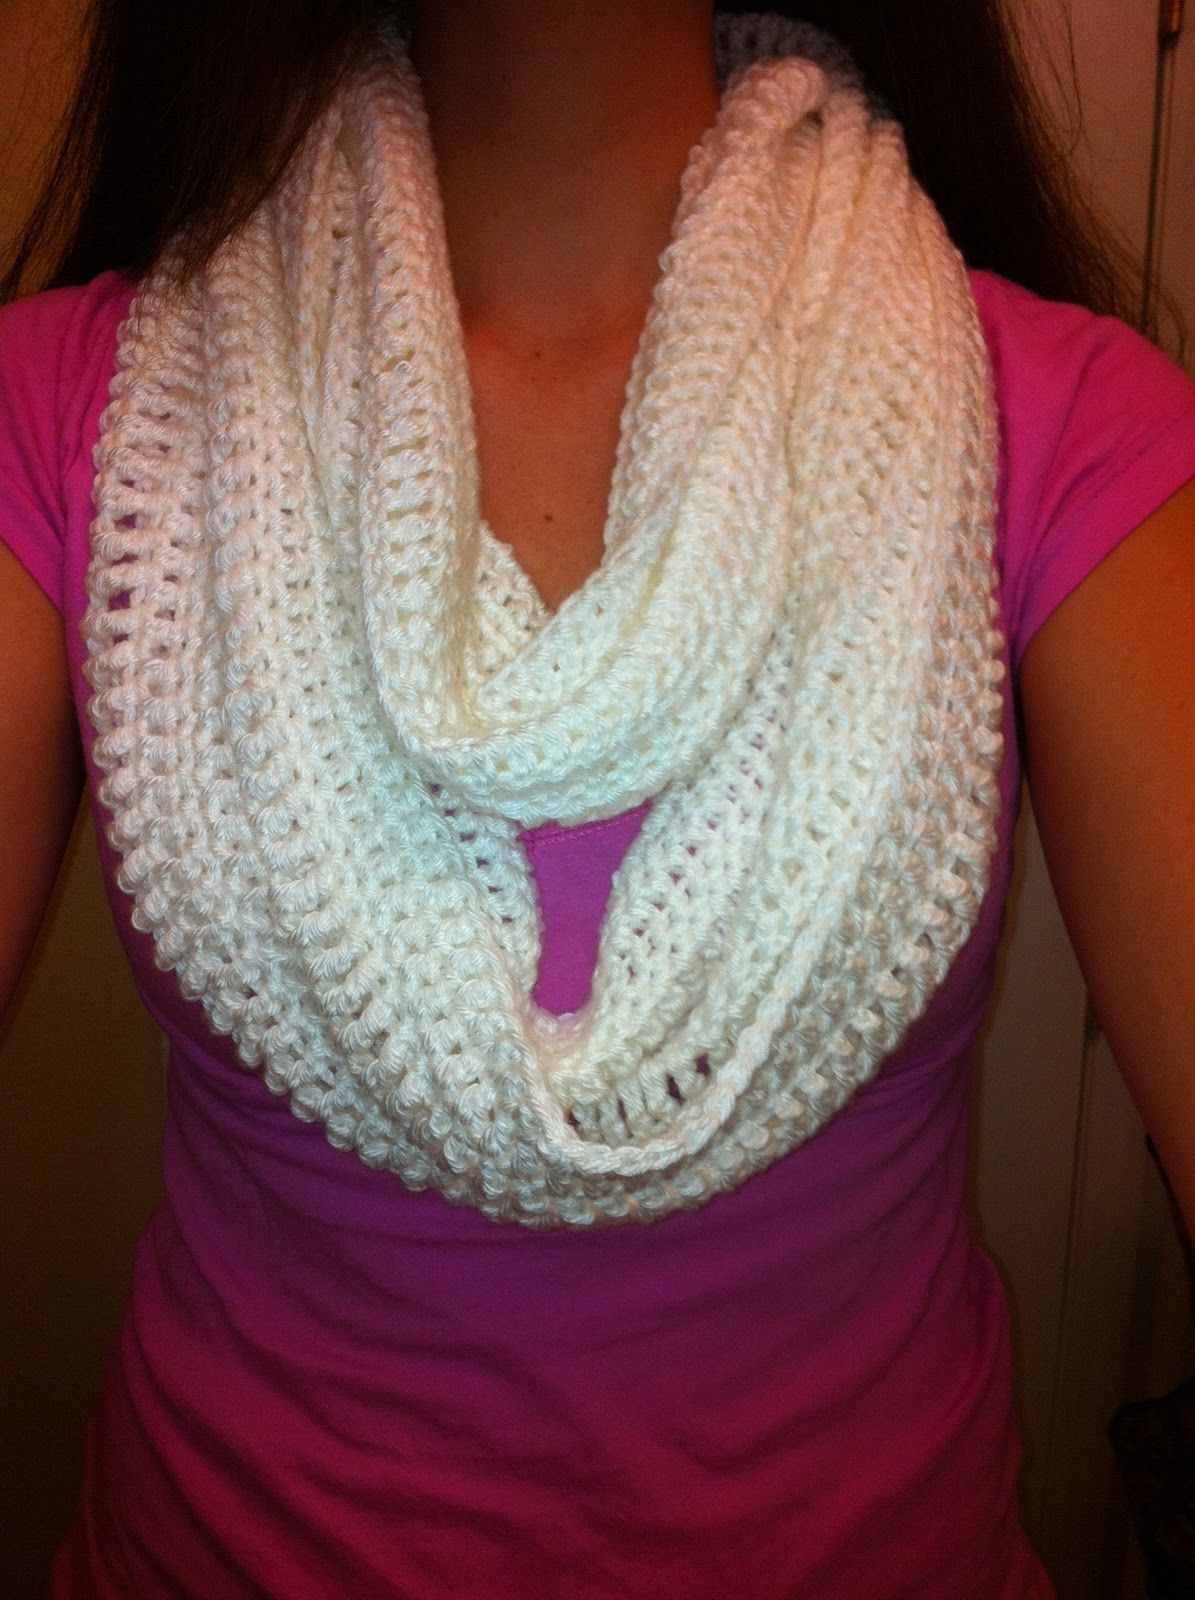 Crochet Infinity Scarf Another Free Pattern | crochet scarves ...